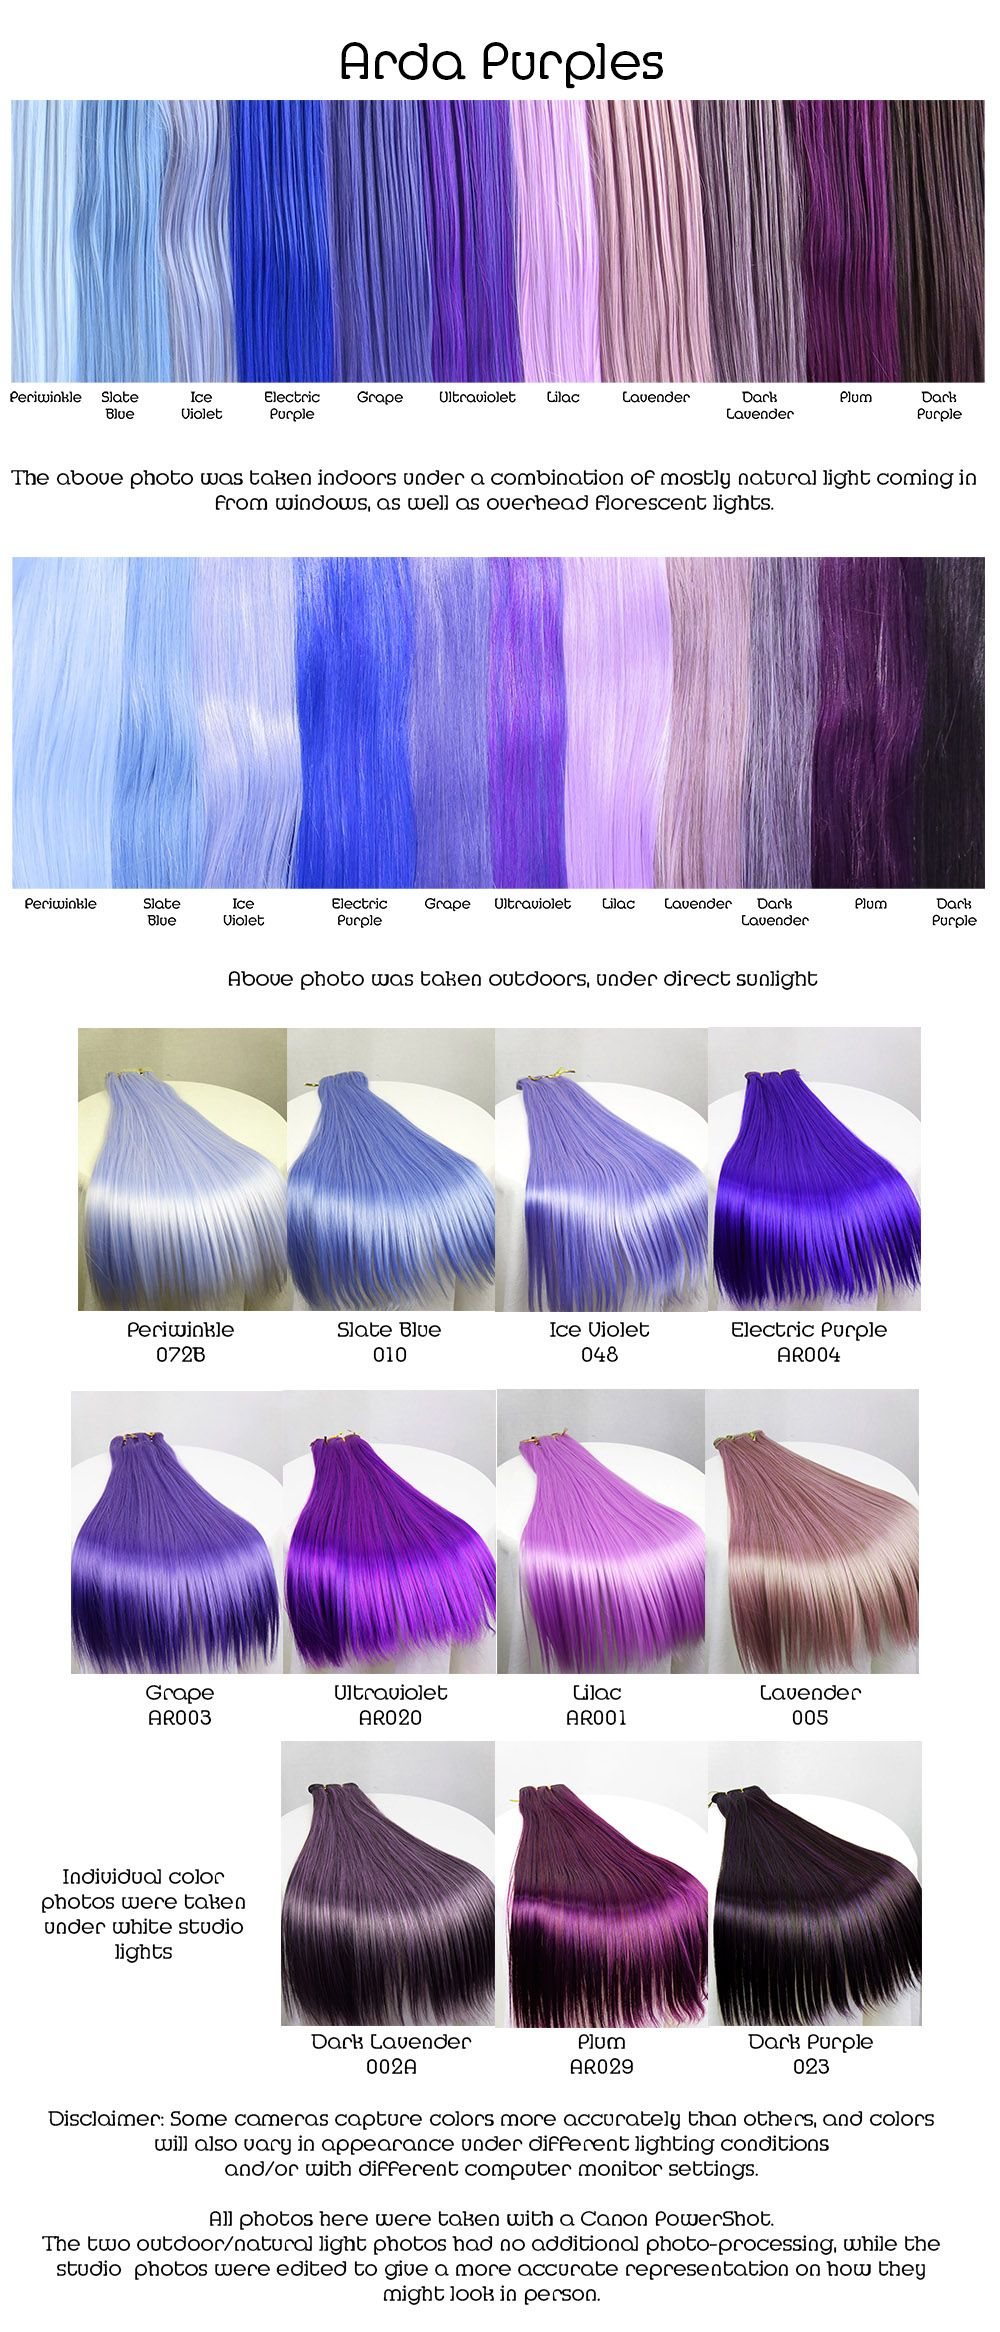 I think I like the dark lavender. Might be a good color to ...